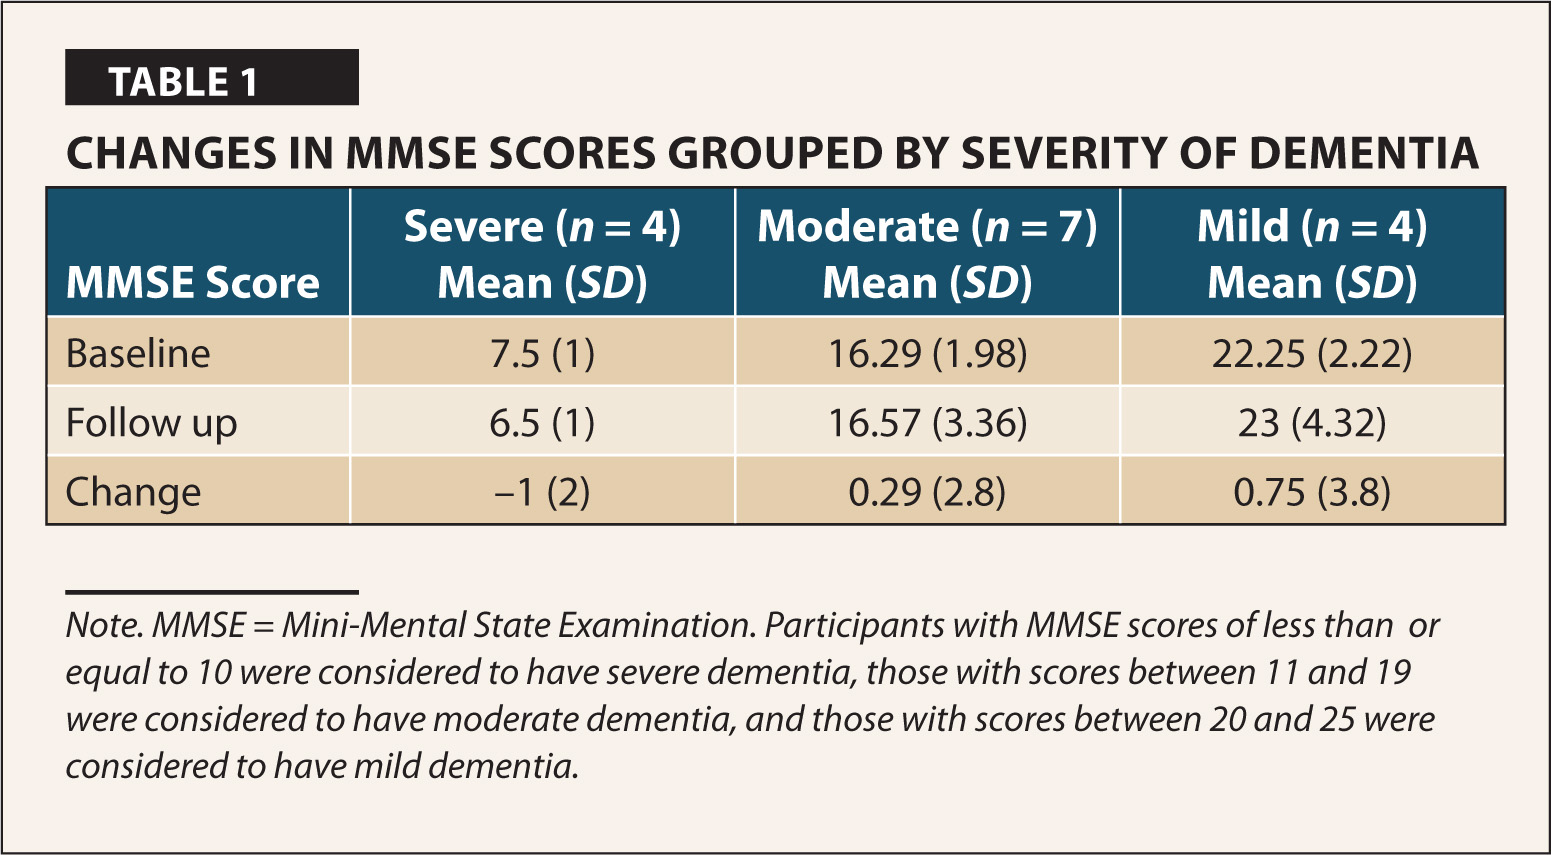 Changes in MMSE Scores Grouped by Severity of Dementia